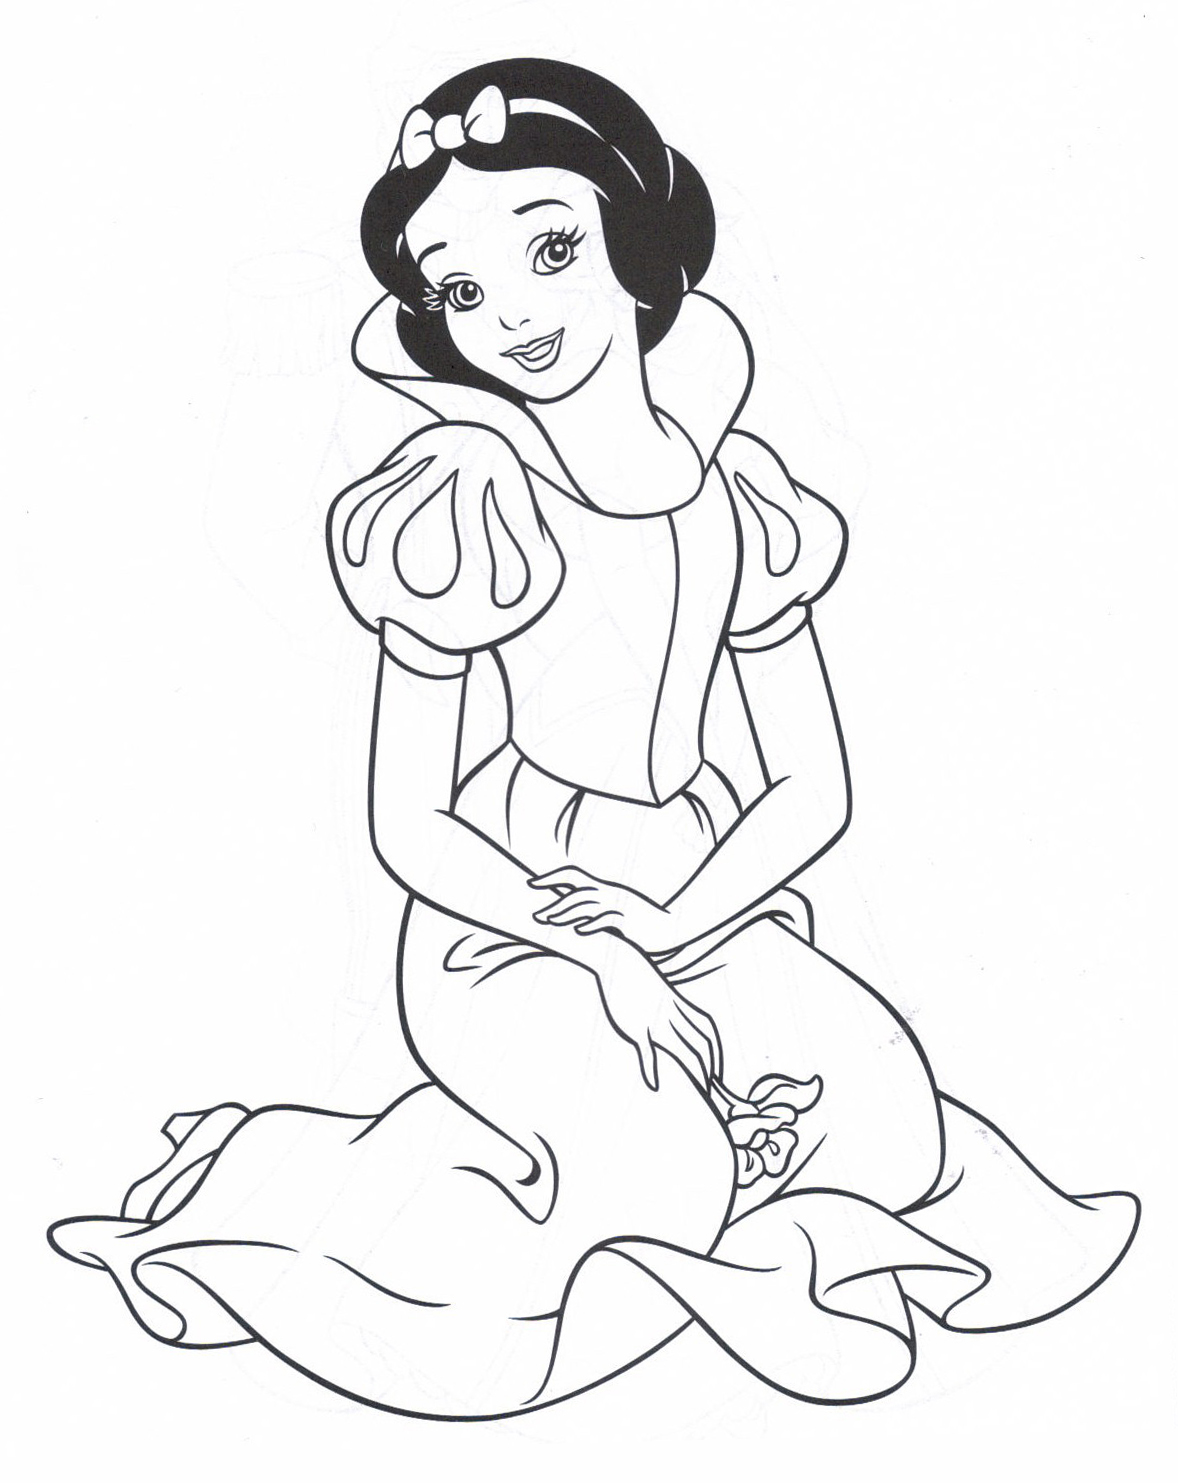 snow white coloring pages free - photo#21